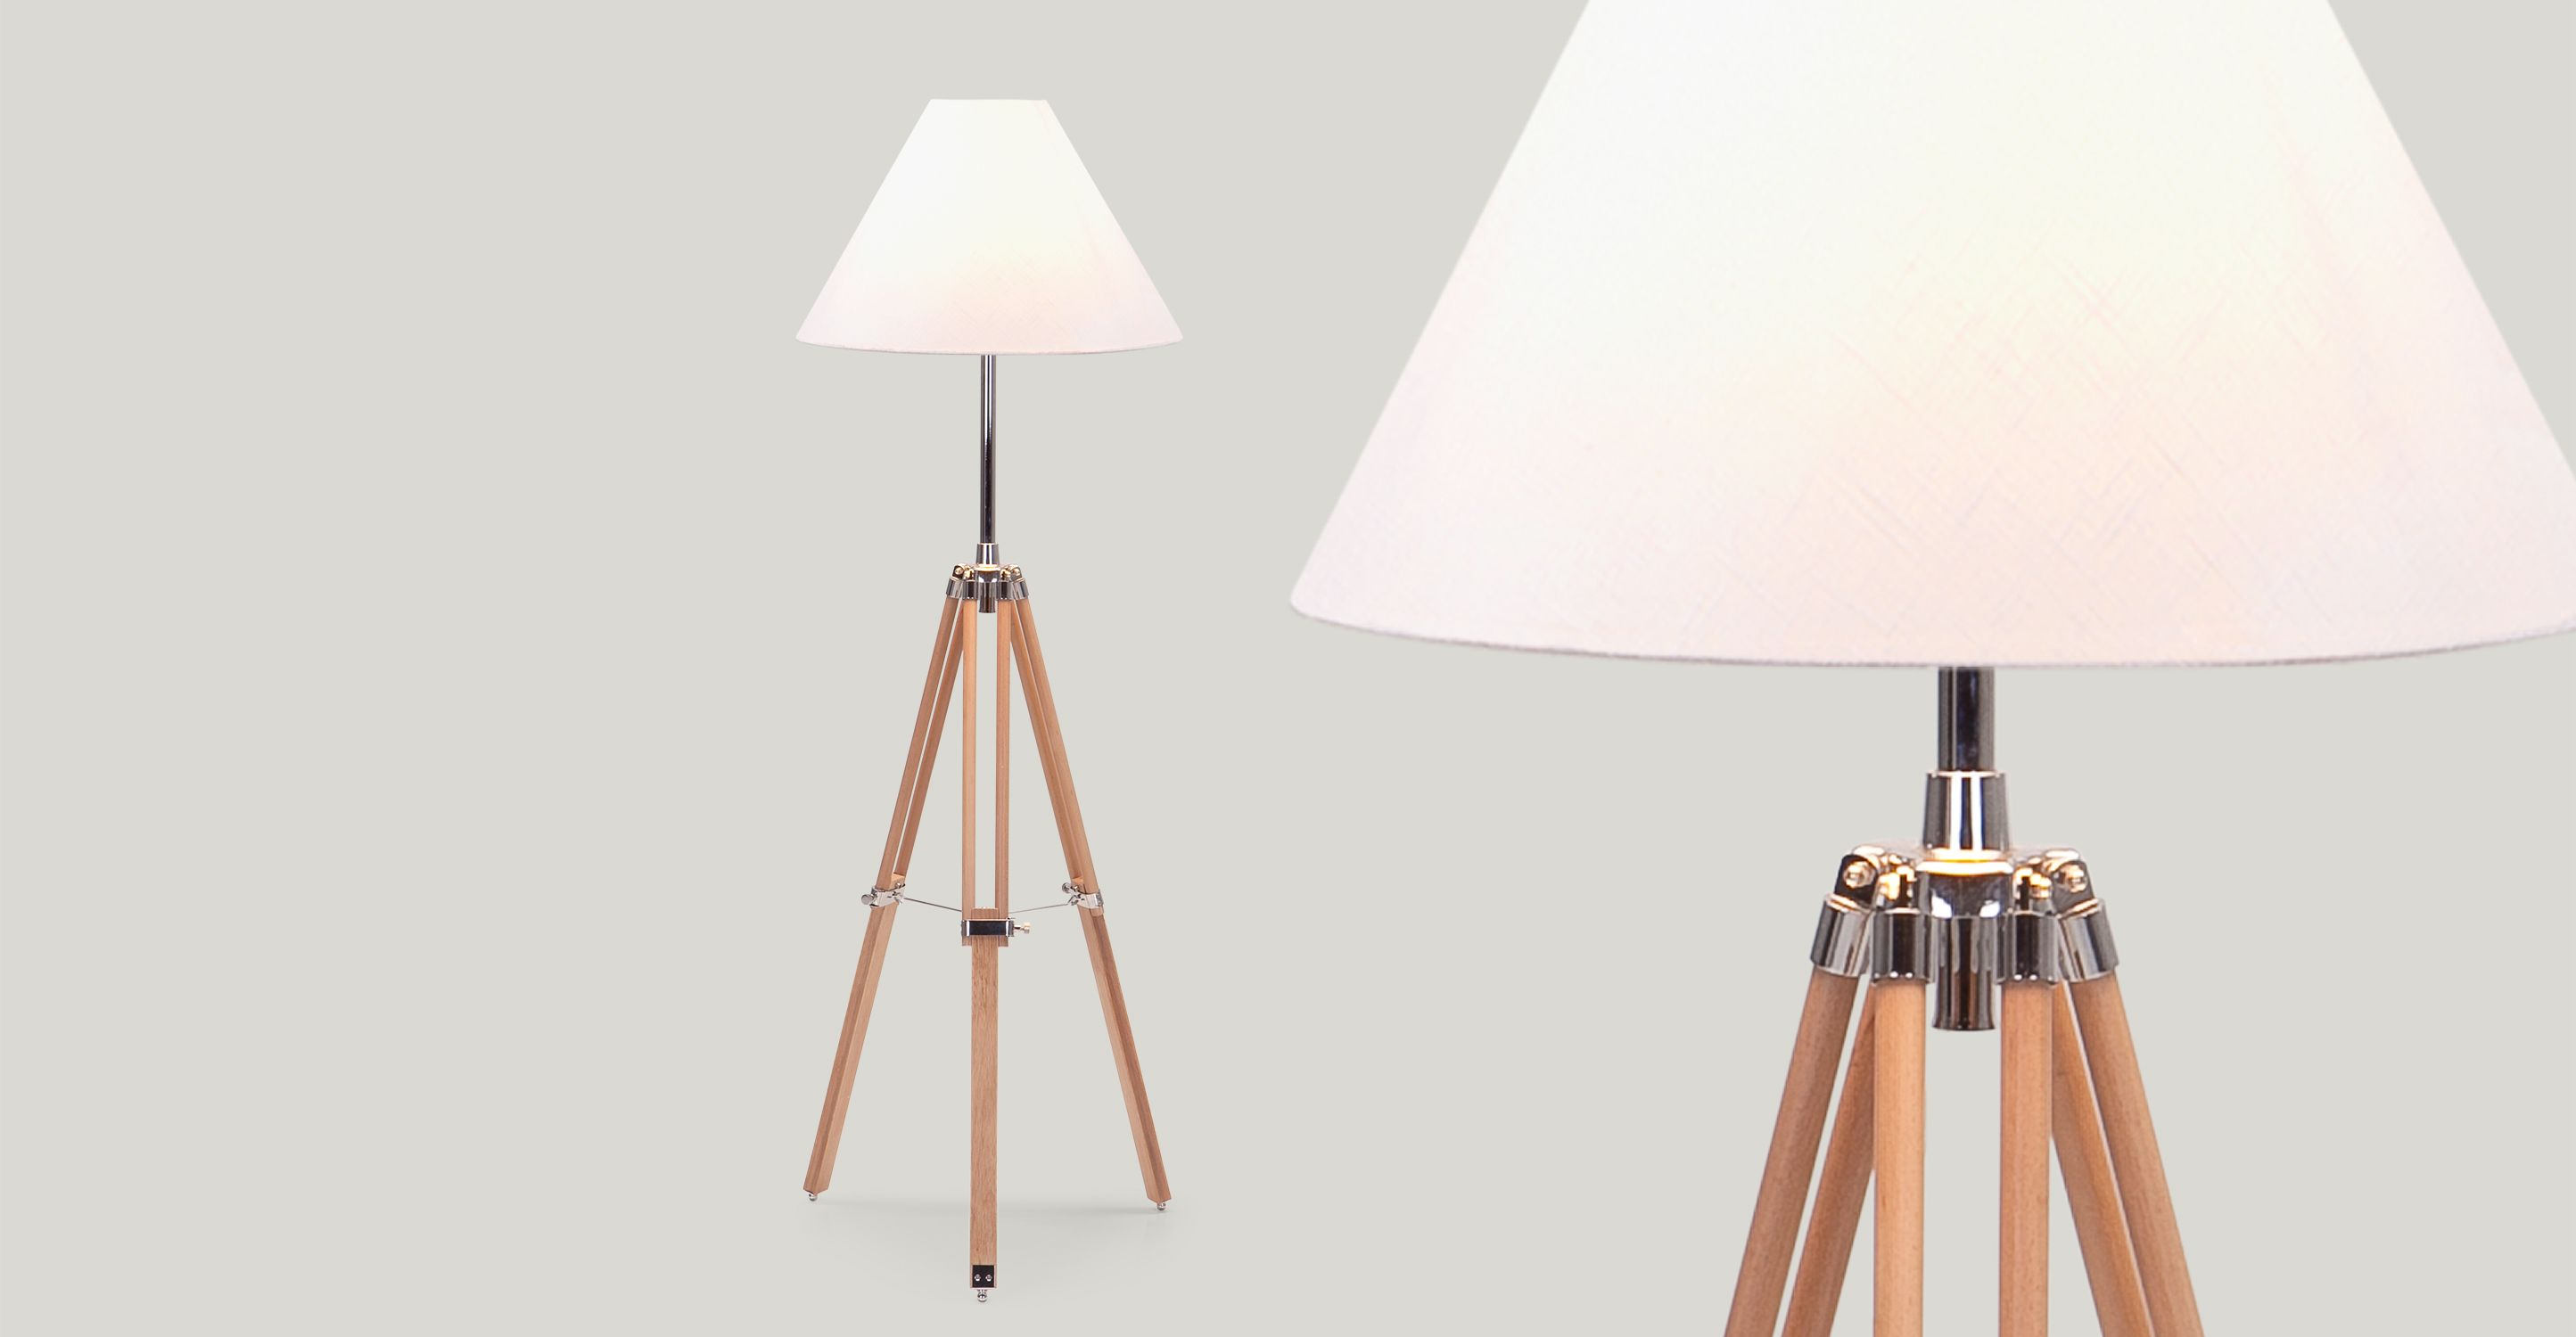 Navy Tripod Floor Lamp in natural wood